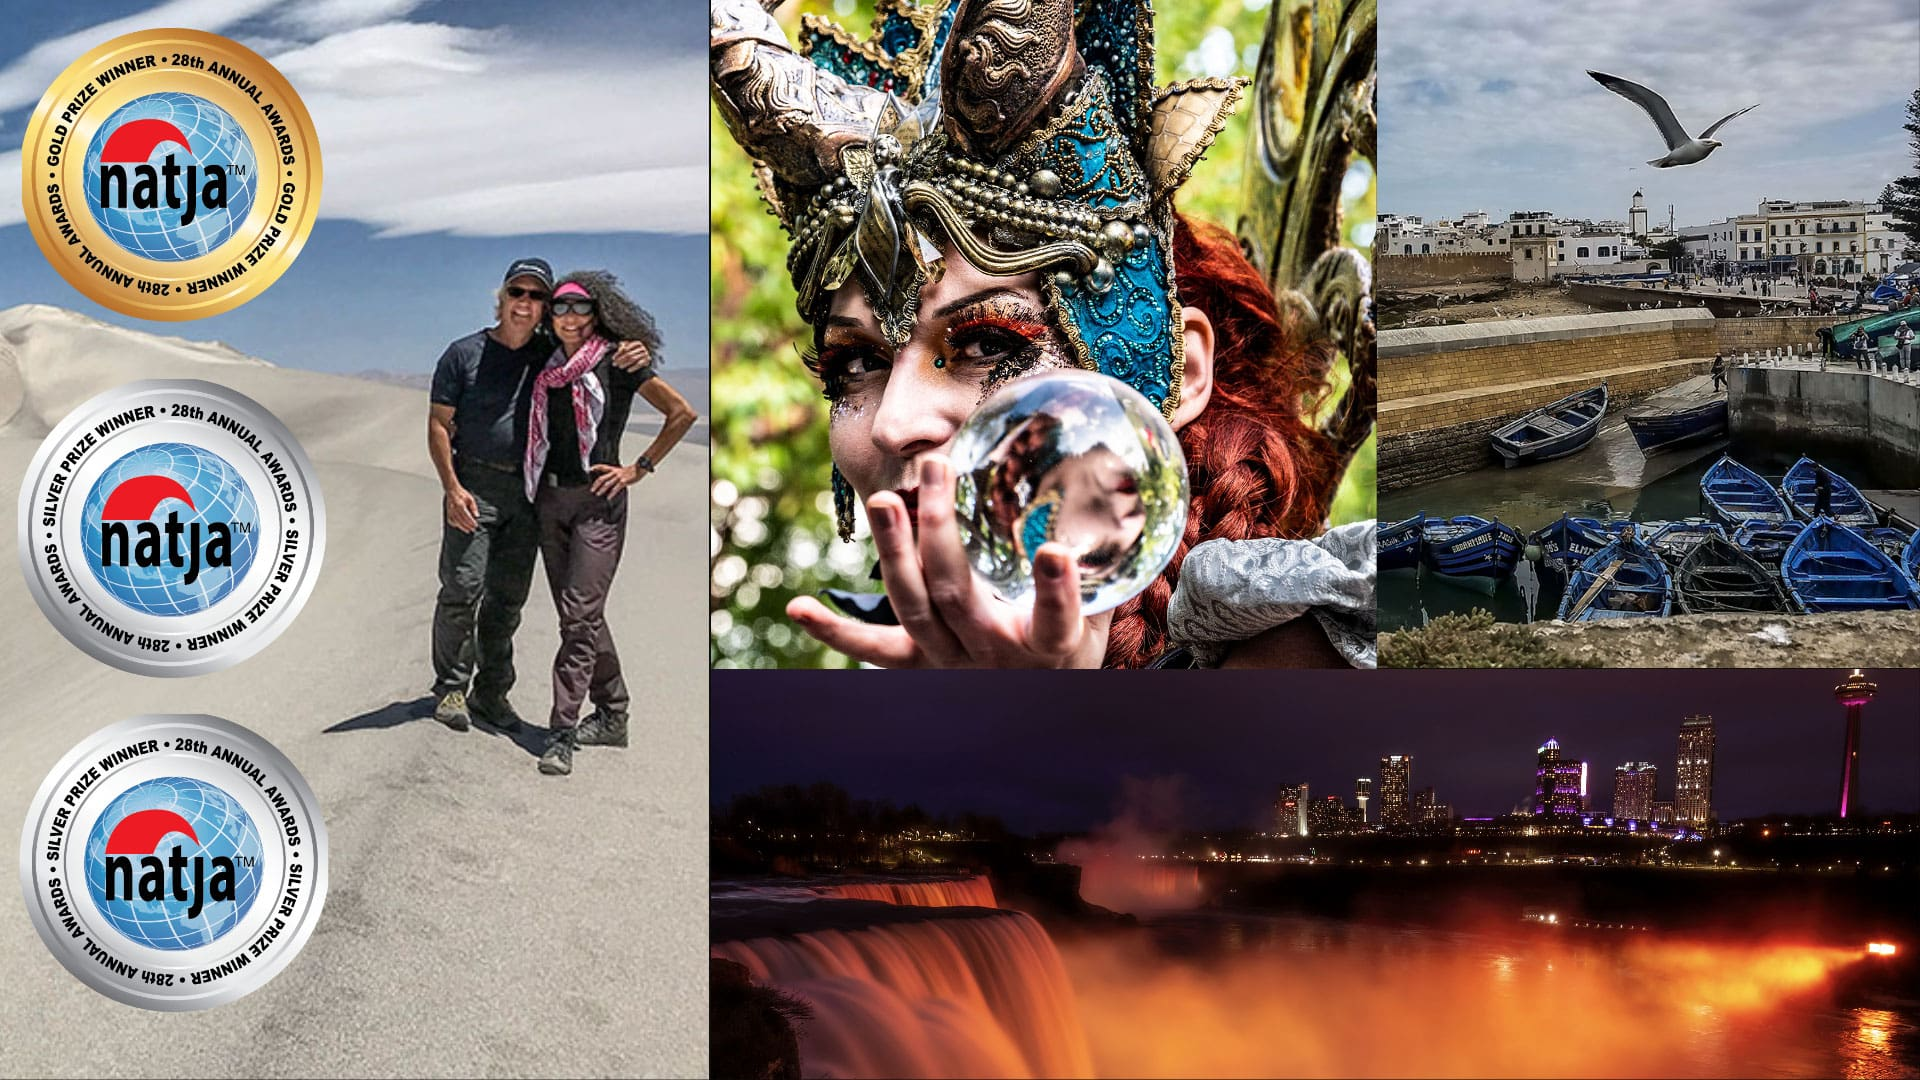 HI Travel Tales Wins 3 NATJA Travel Photography Awards and 1 Travel Writing Award In 2019